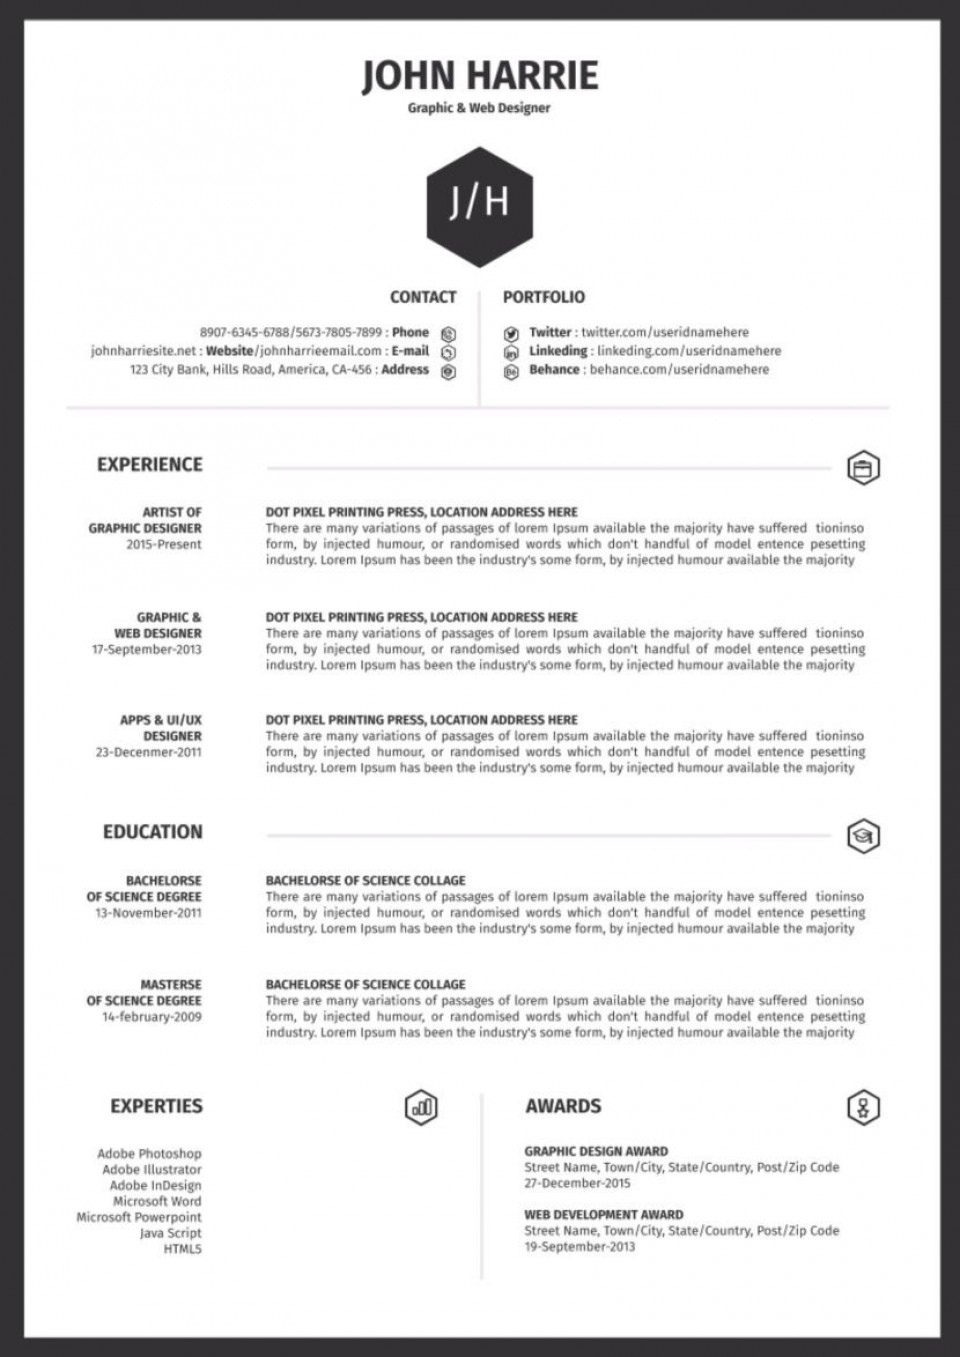 009 Fearsome One Page Resume Template Image  Word Free For Fresher Ppt Download Html960